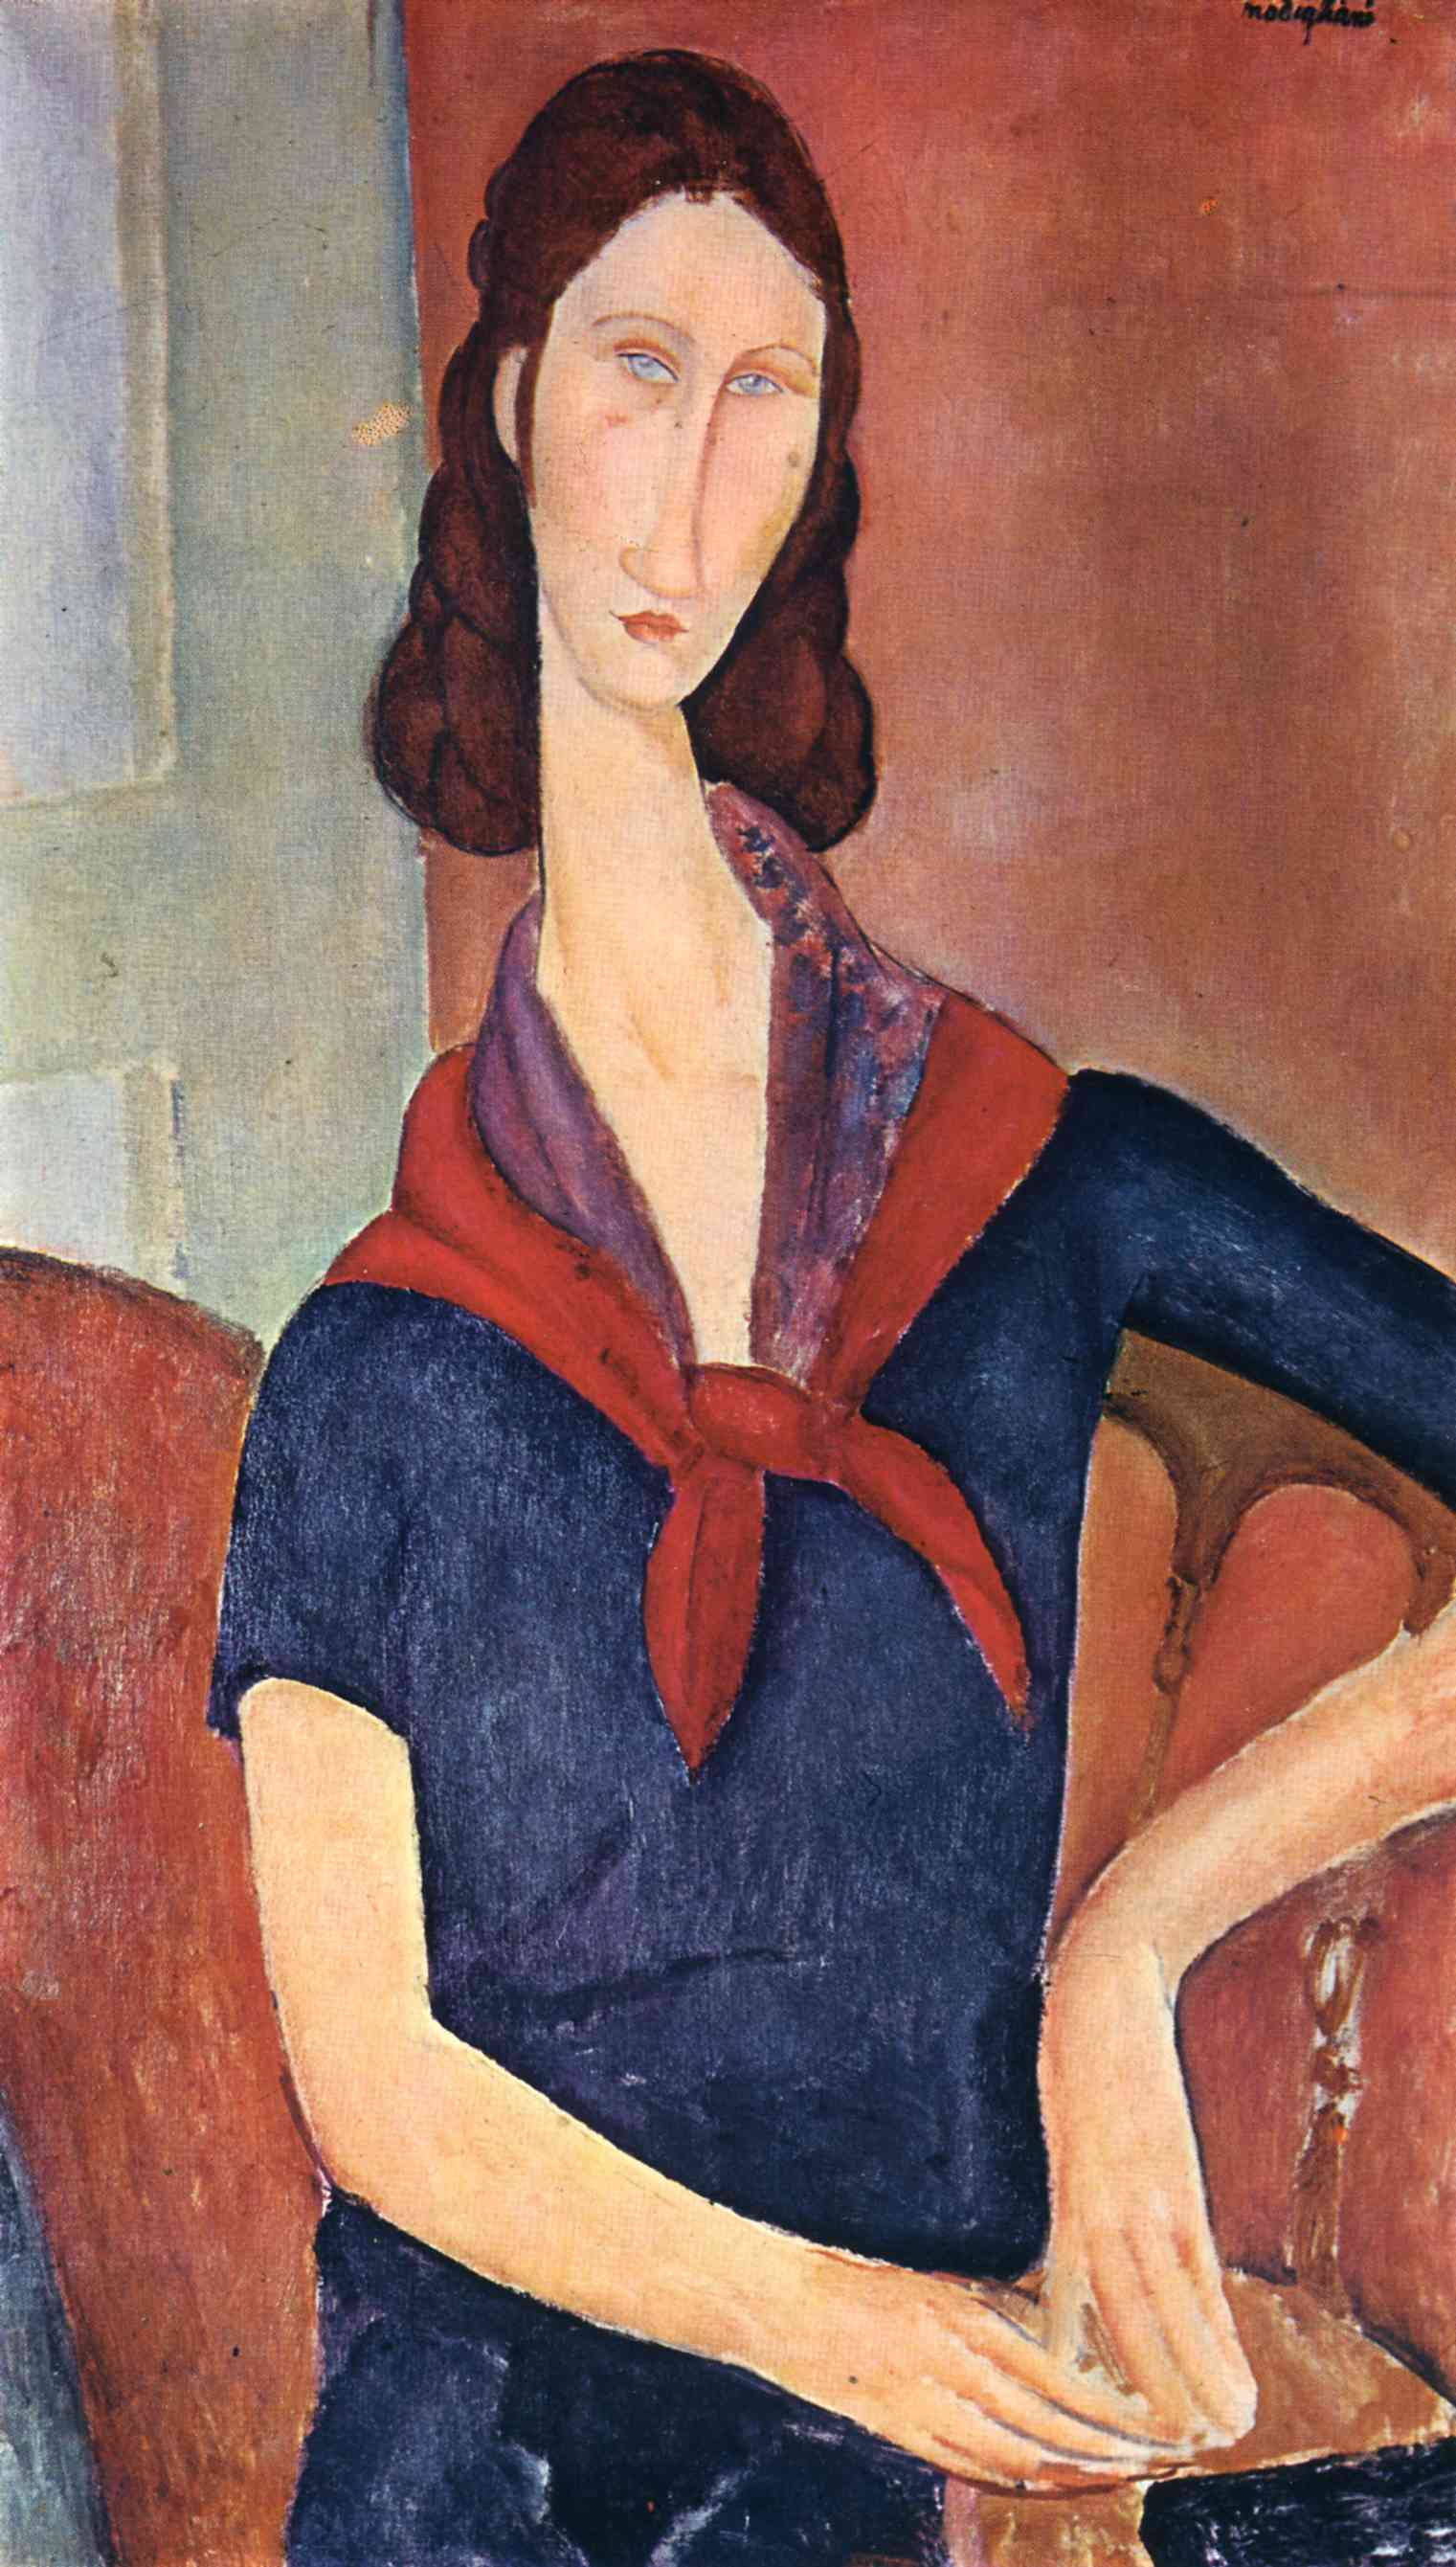 Amedeo Modigliani - Jeanne Hebuterne with a scarf 1919